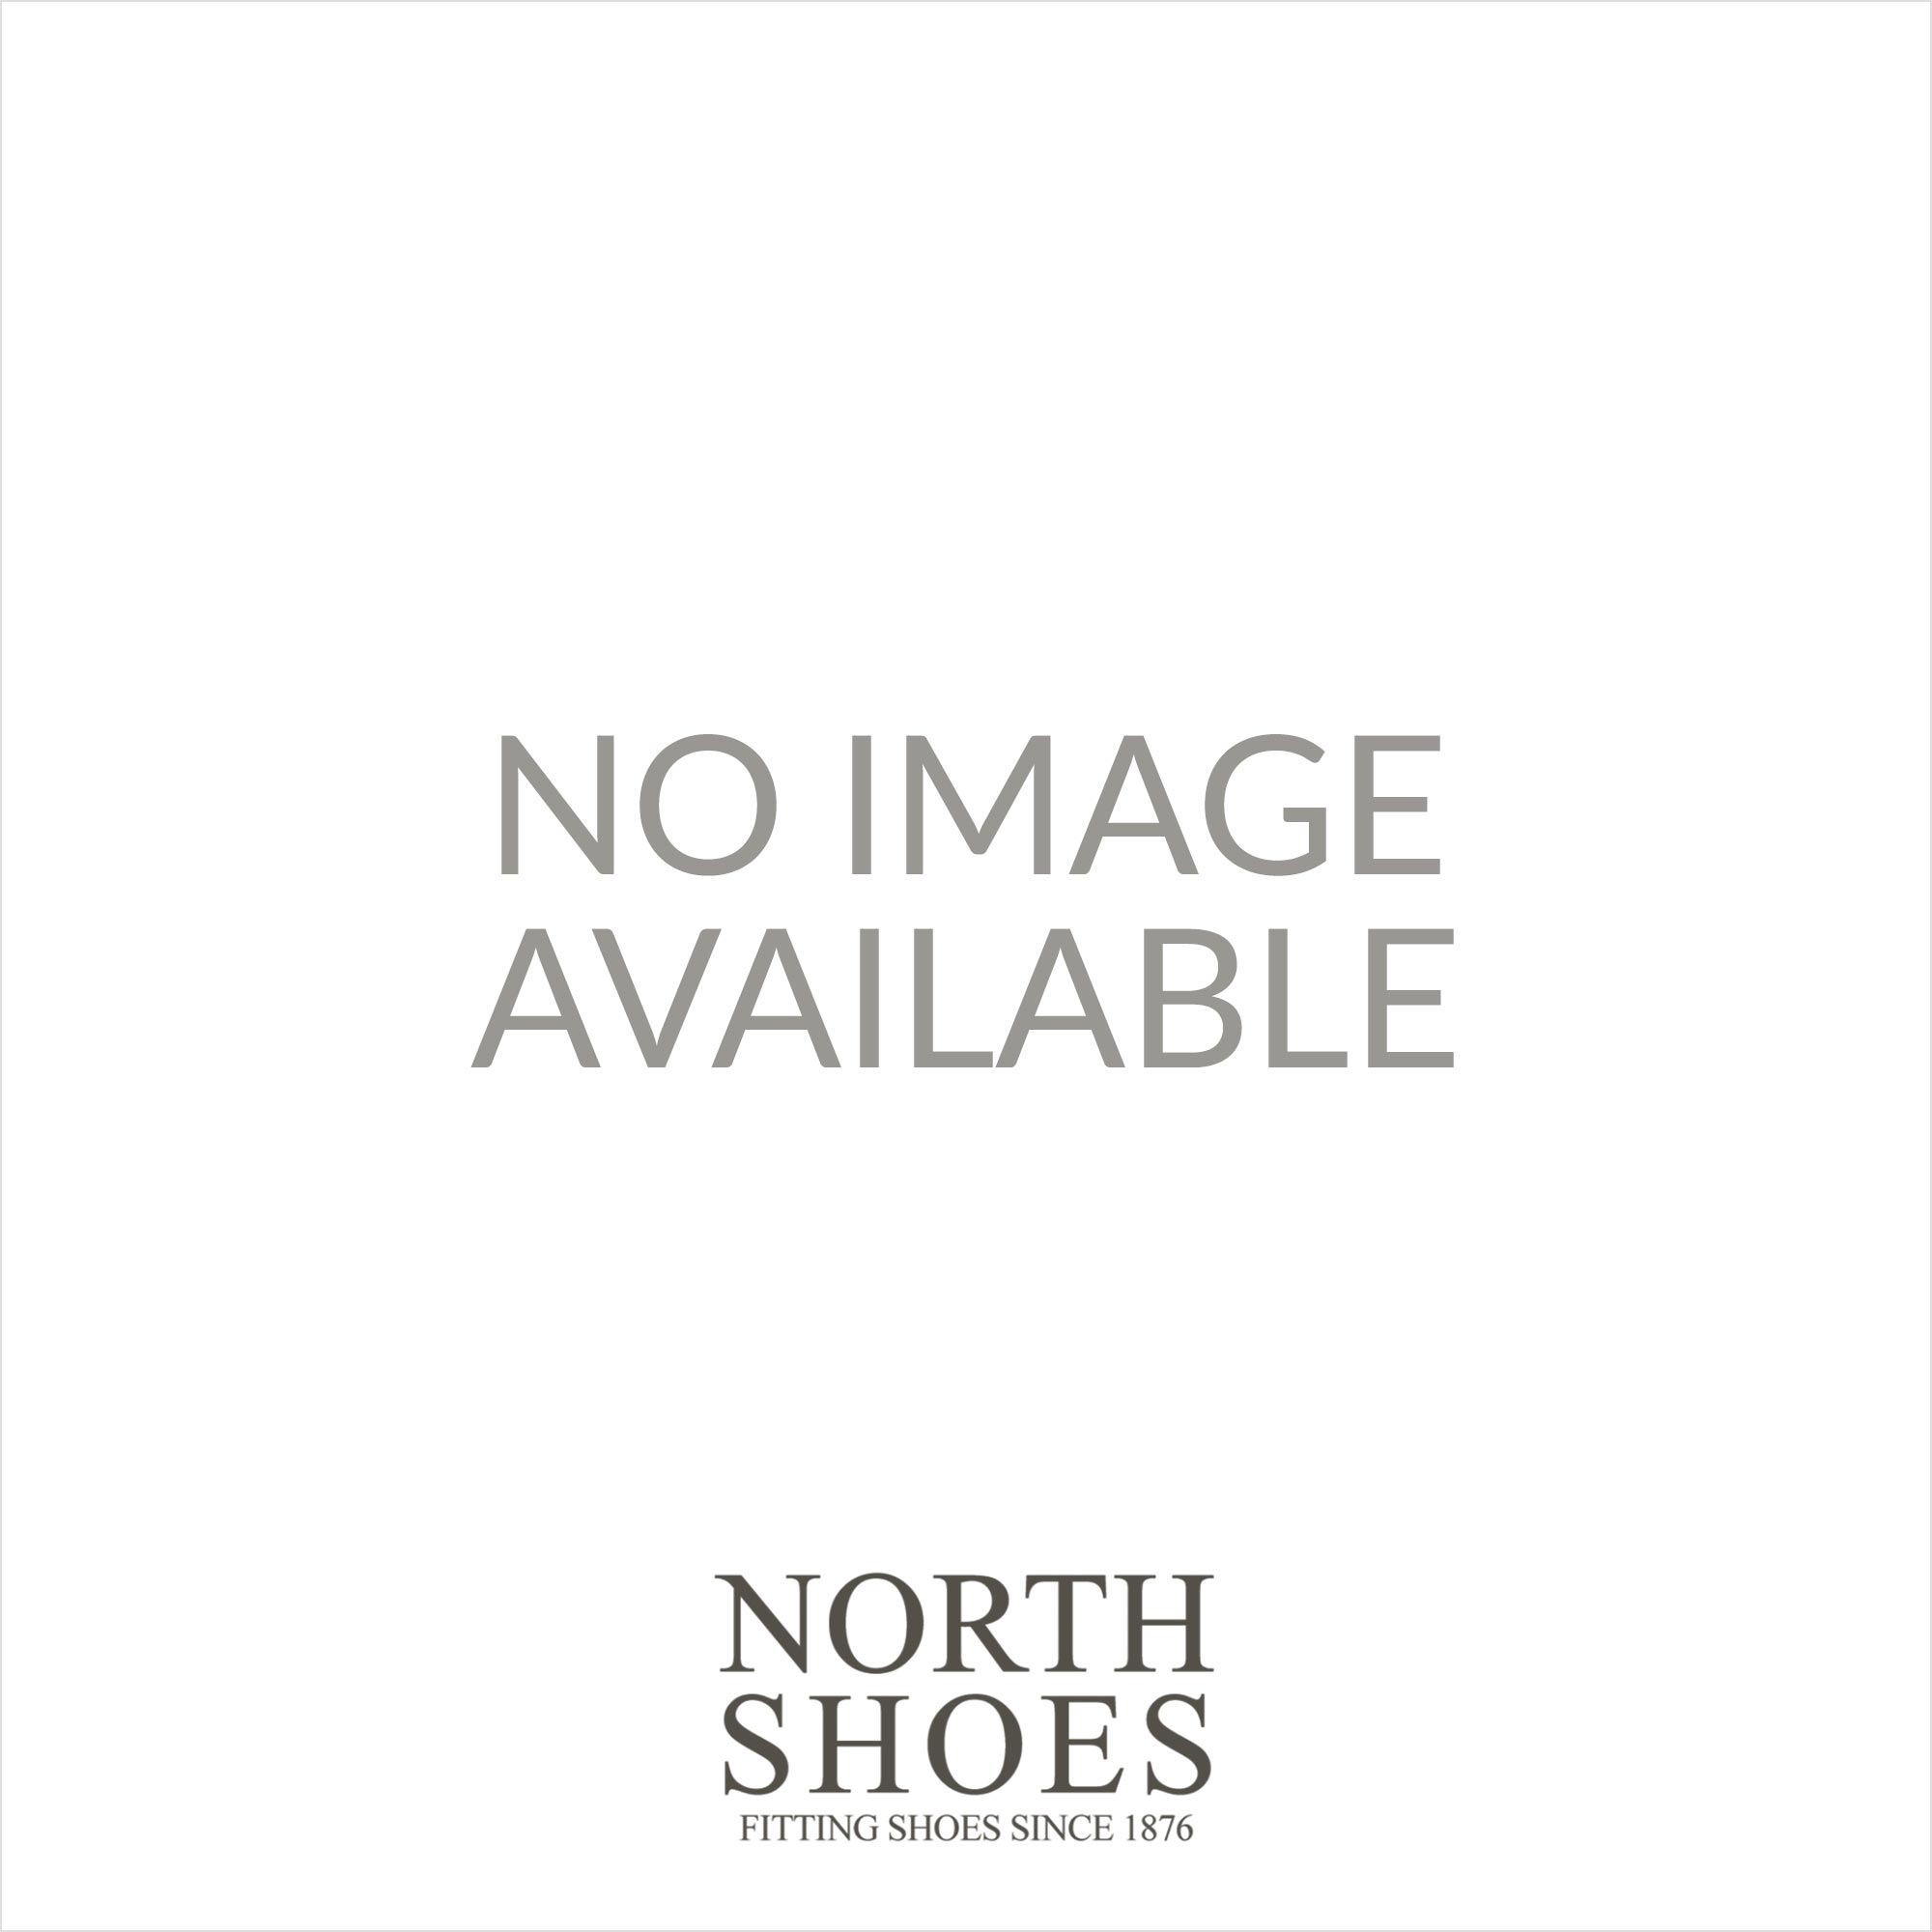 fc0e11cc37b6 Toni Pons Tarbes Navy And White Striped Canvas Womens Wedge Espadrille  Sandal - Toni Pons from North Shoes UK